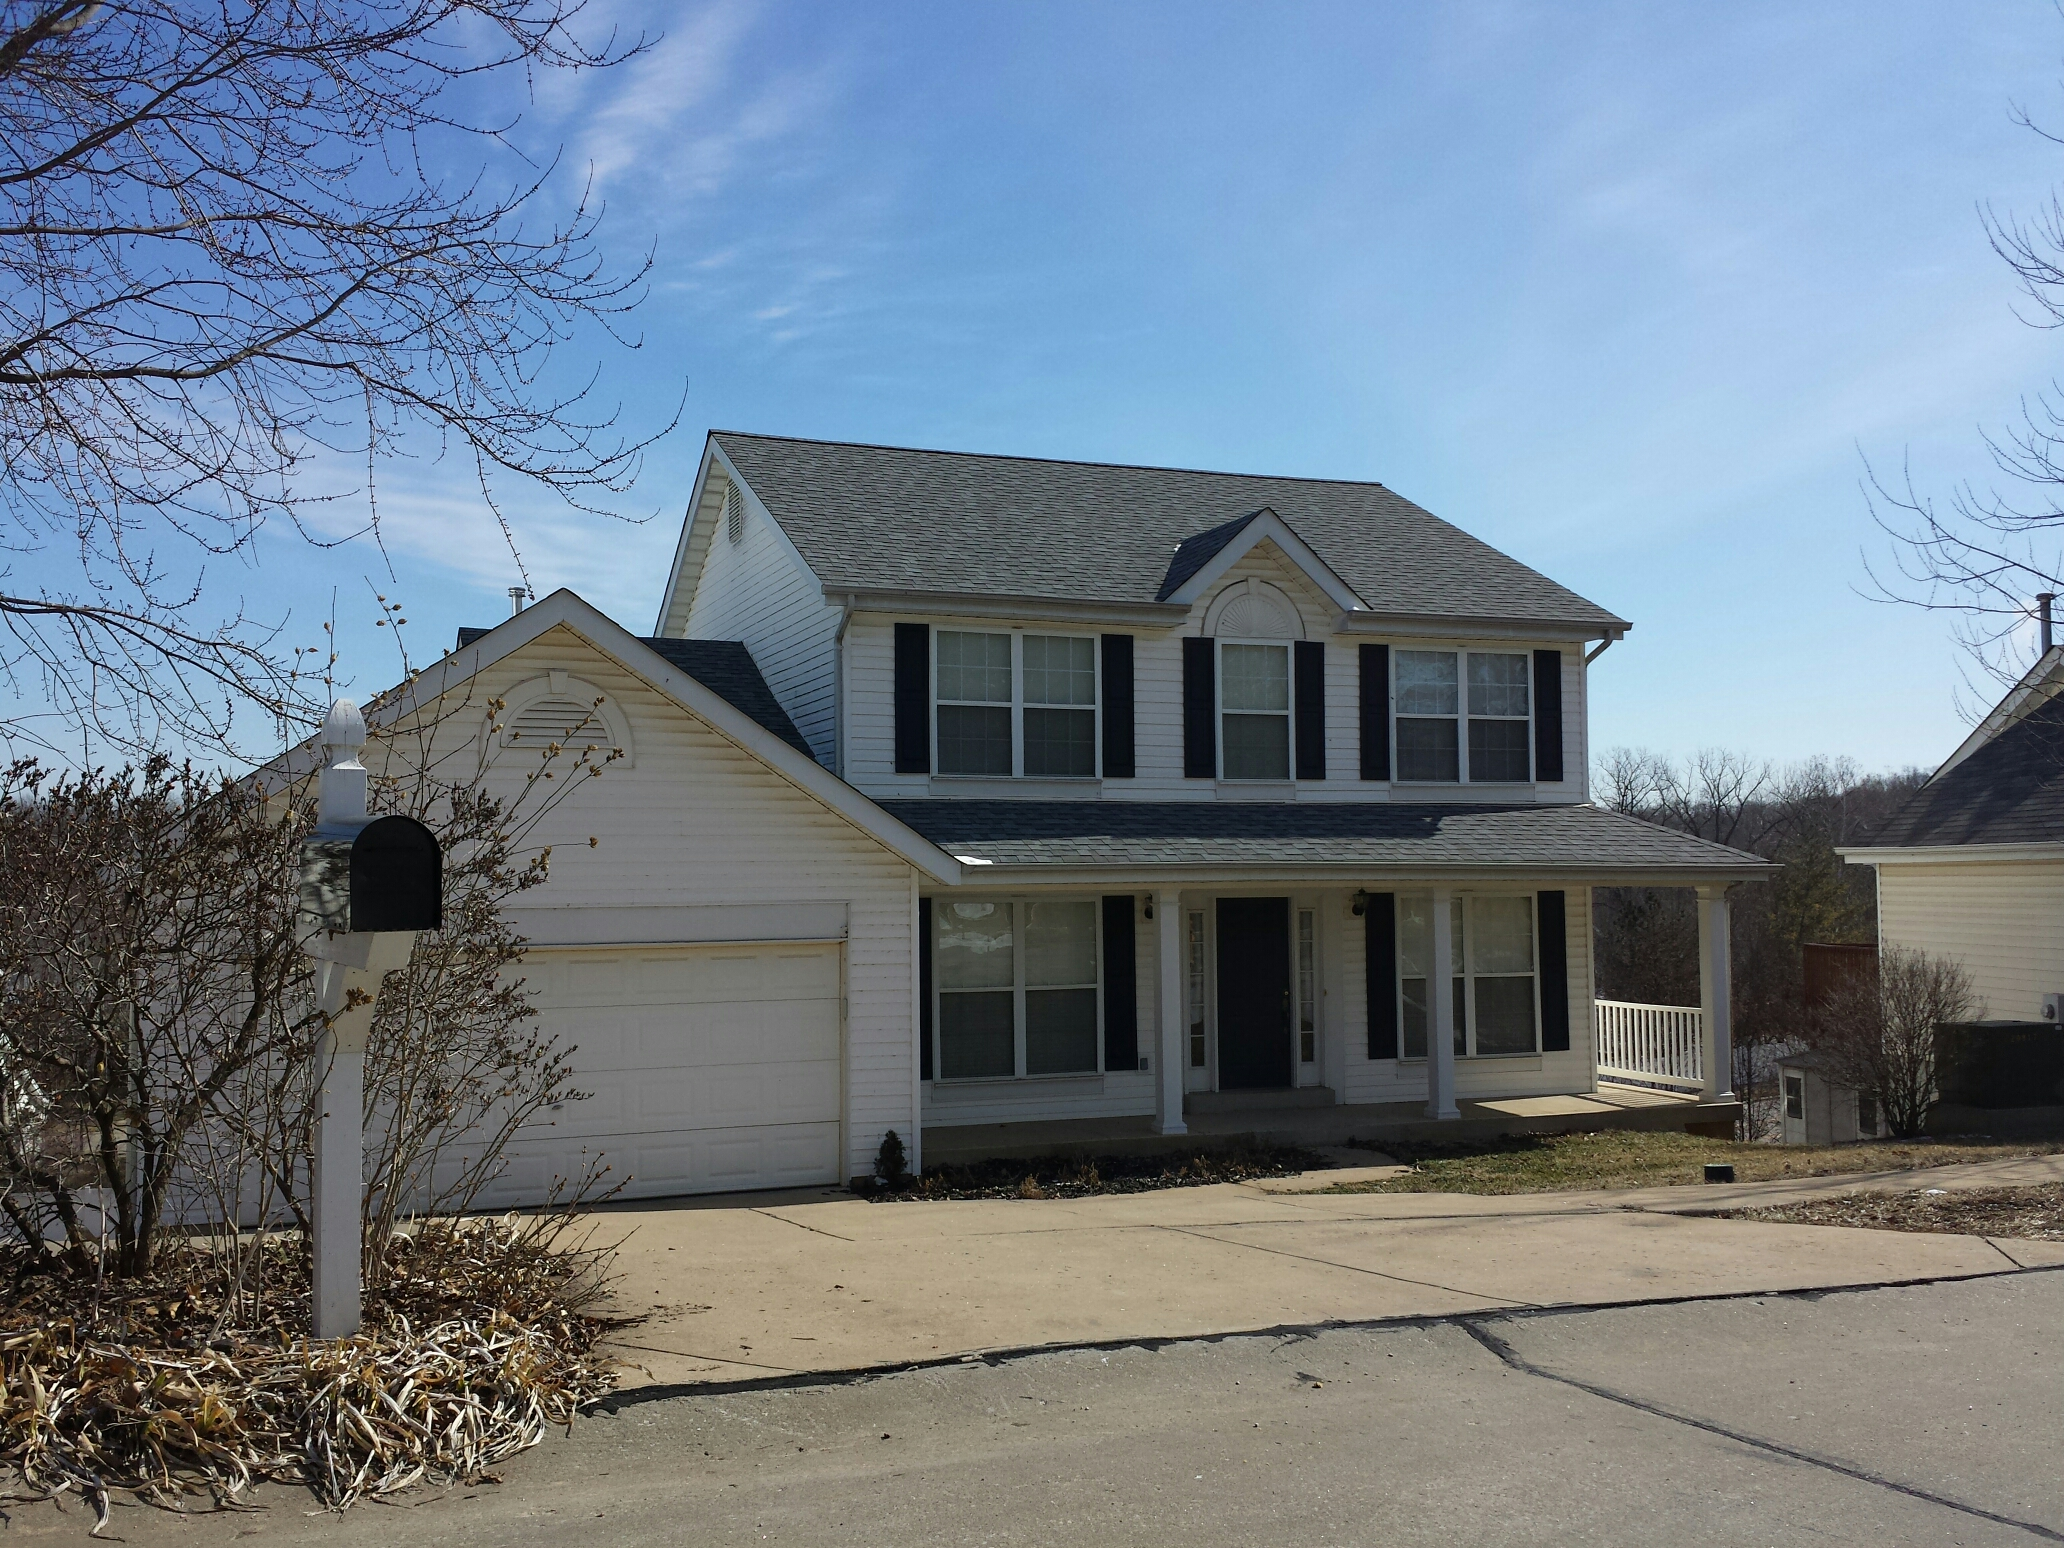 Valley Park, MO - New roof from insurance claim. Ballwin. Call Joe 314-550-7369